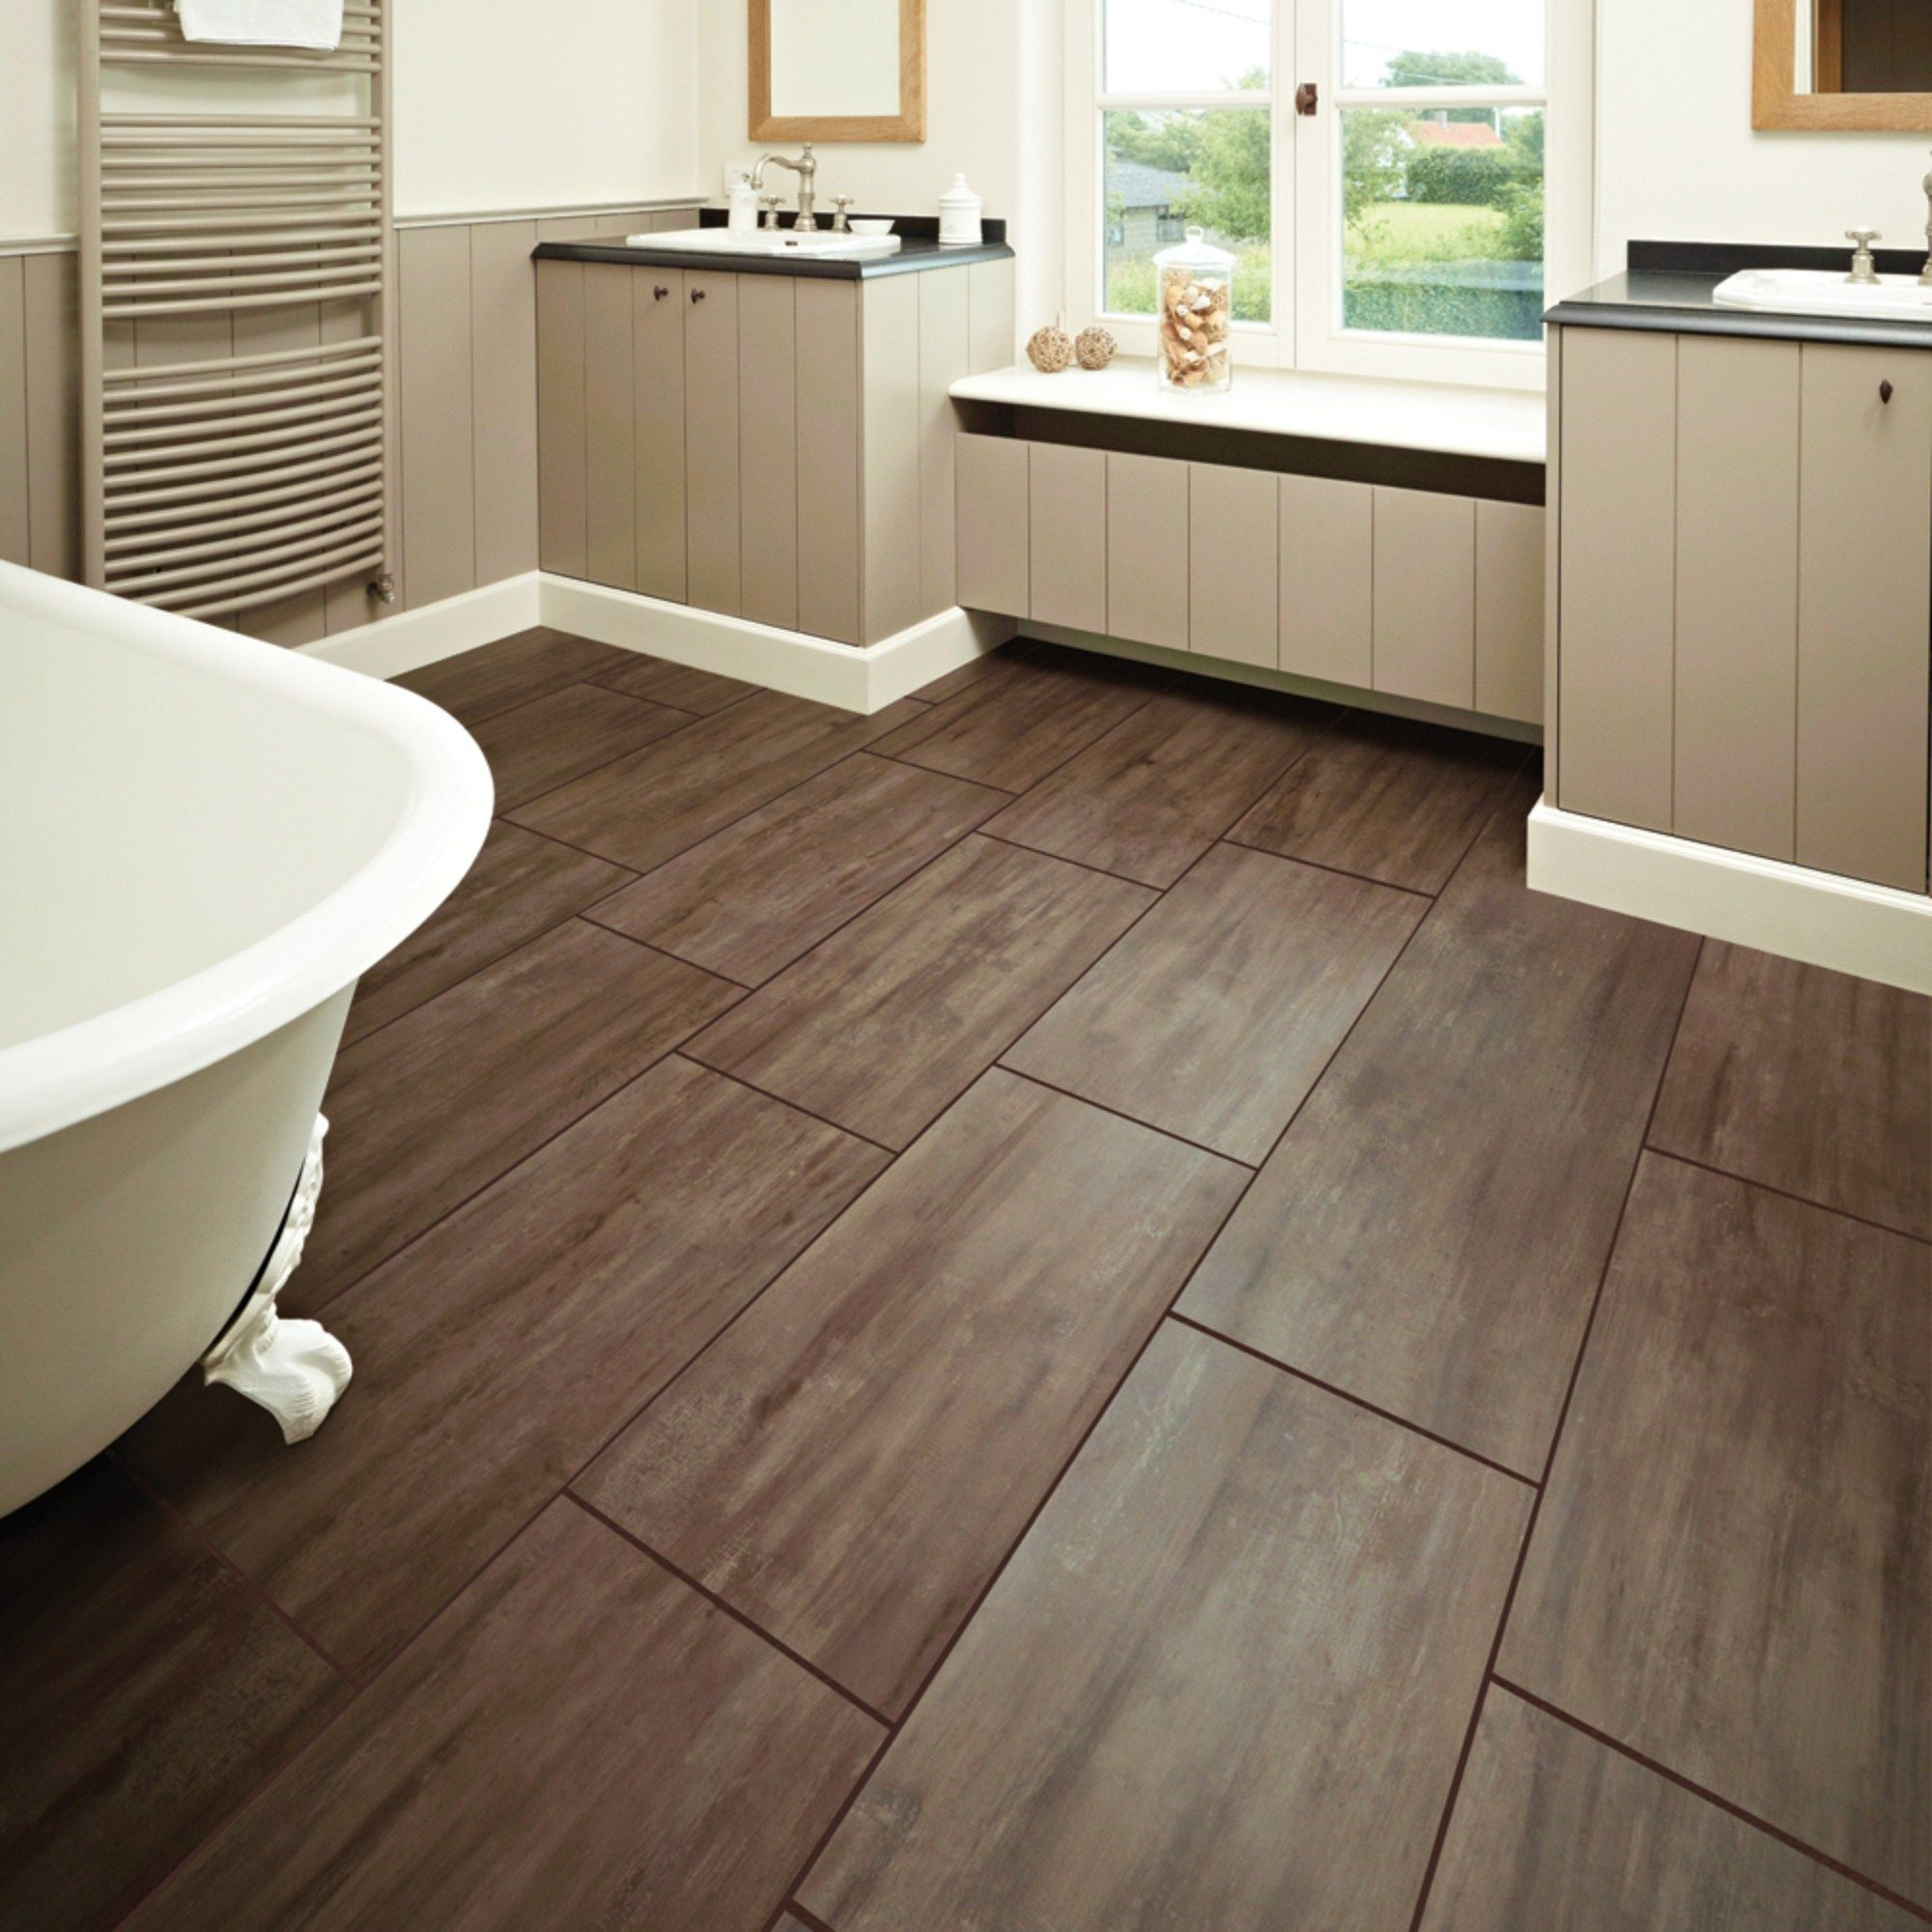 ideas unique in cork brown options luxury tiles of lovely flooring bathroom